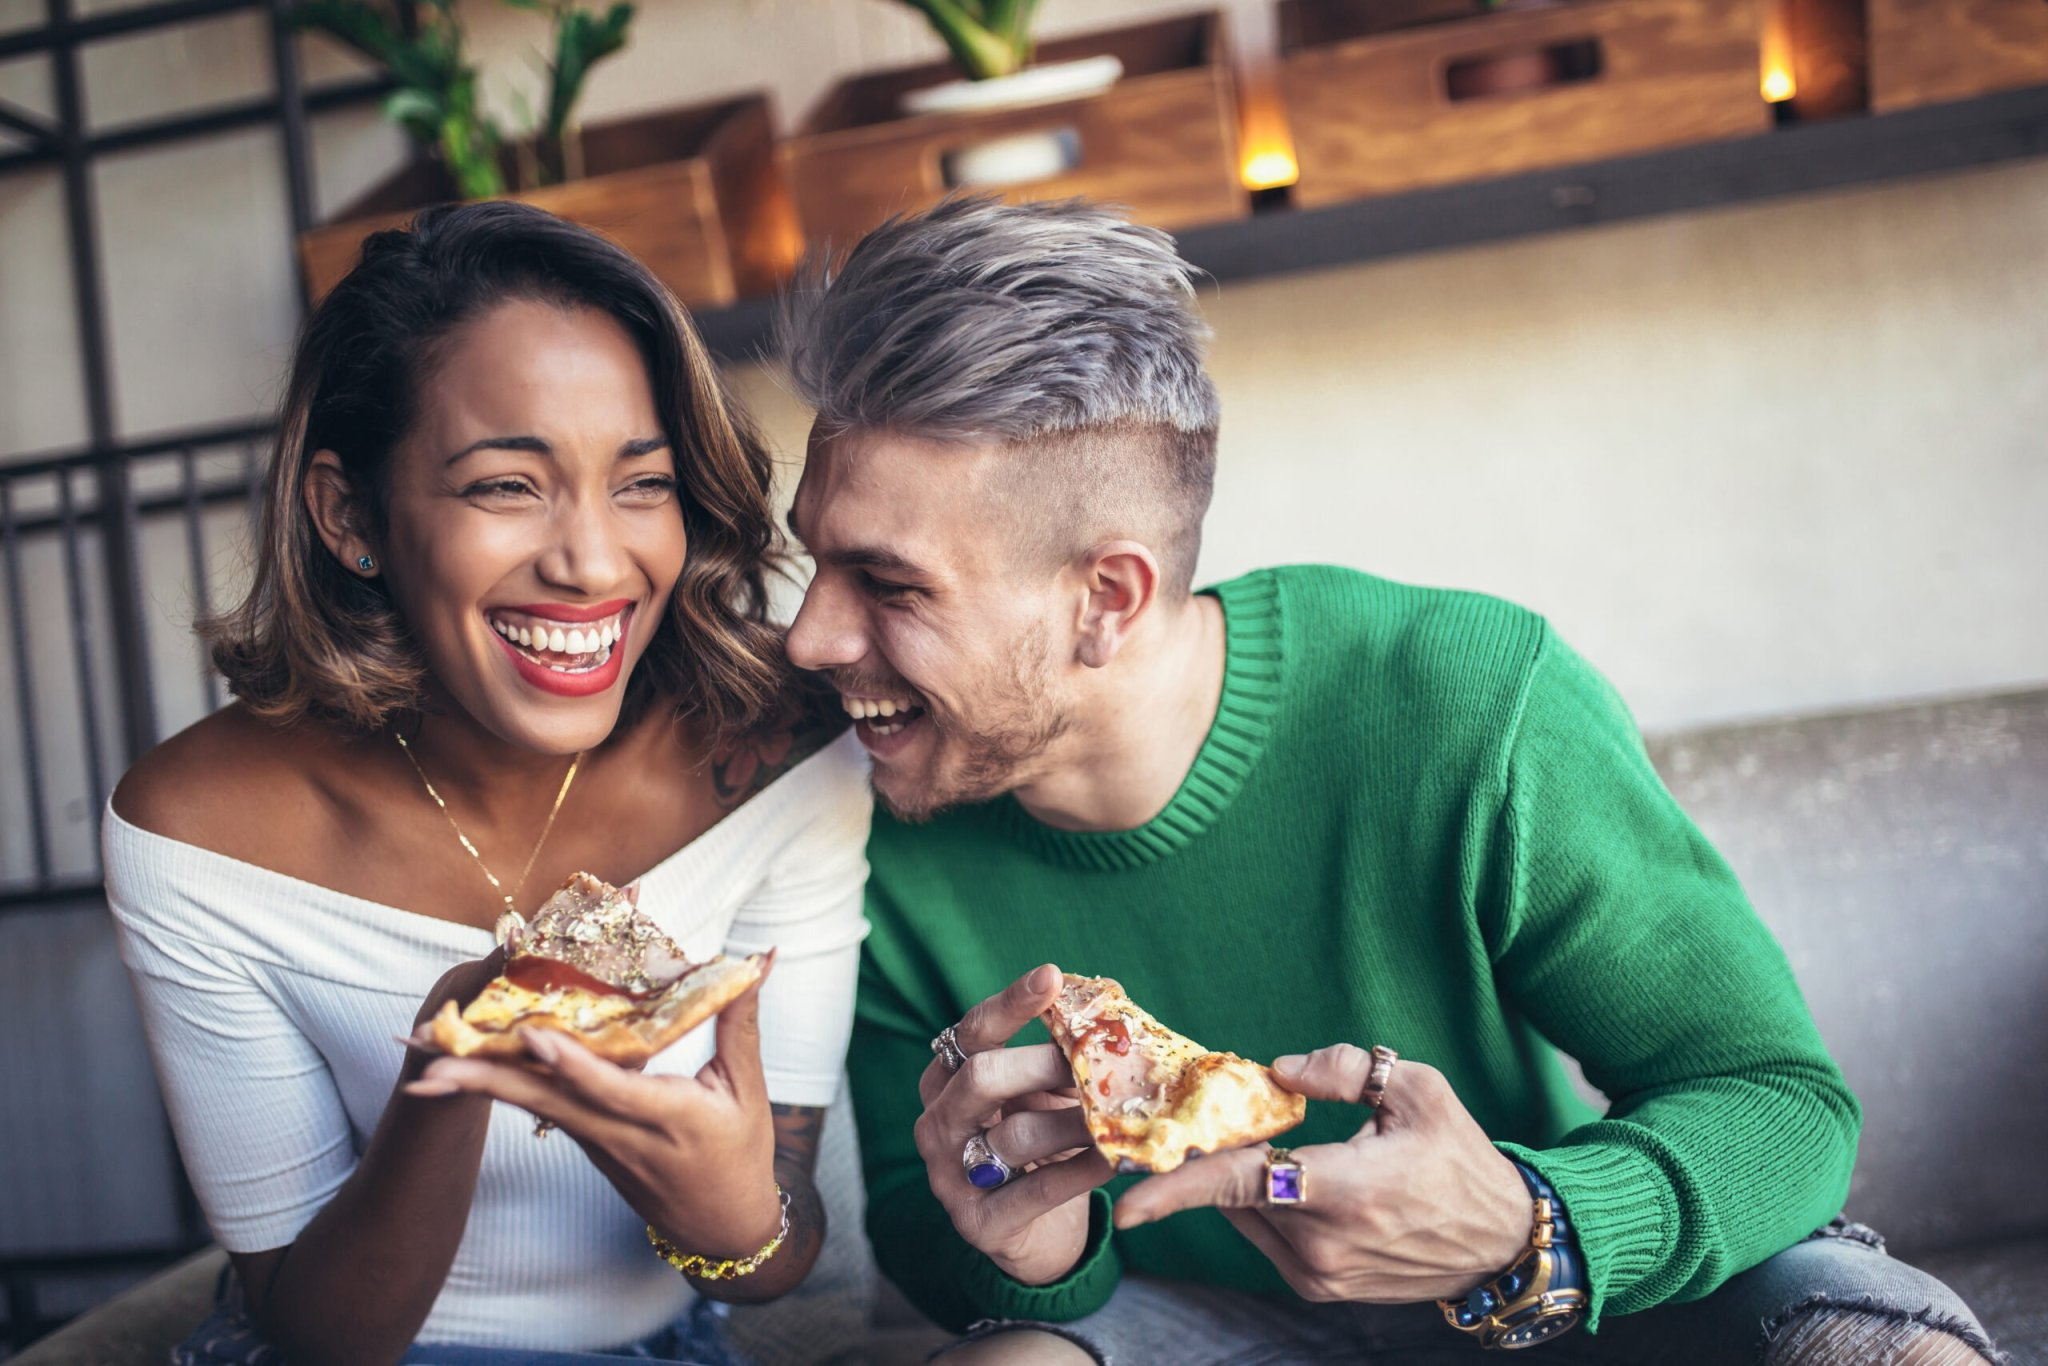 Break Out Of The Relationship Rut With These 7 Unique & Cheap Date Ideas